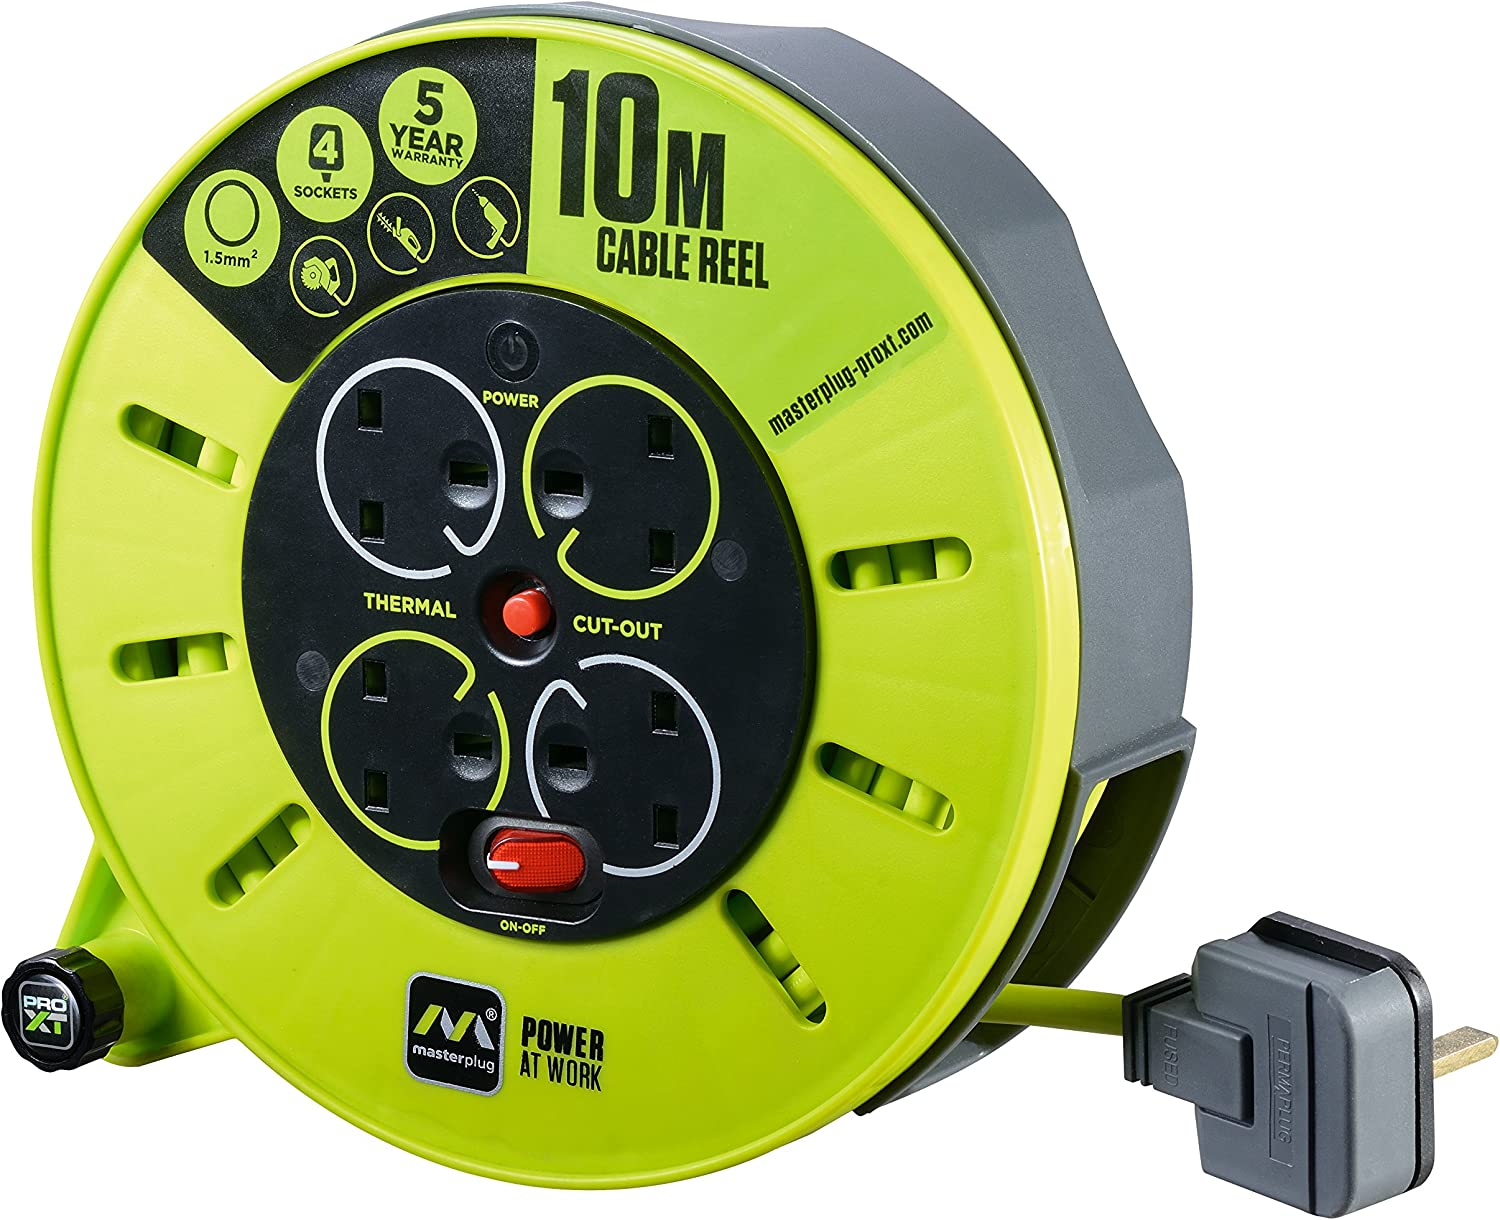 LED 25 Metre Masterplug Pro XT Medium Open Cable Reel 4 SOCKET Switch